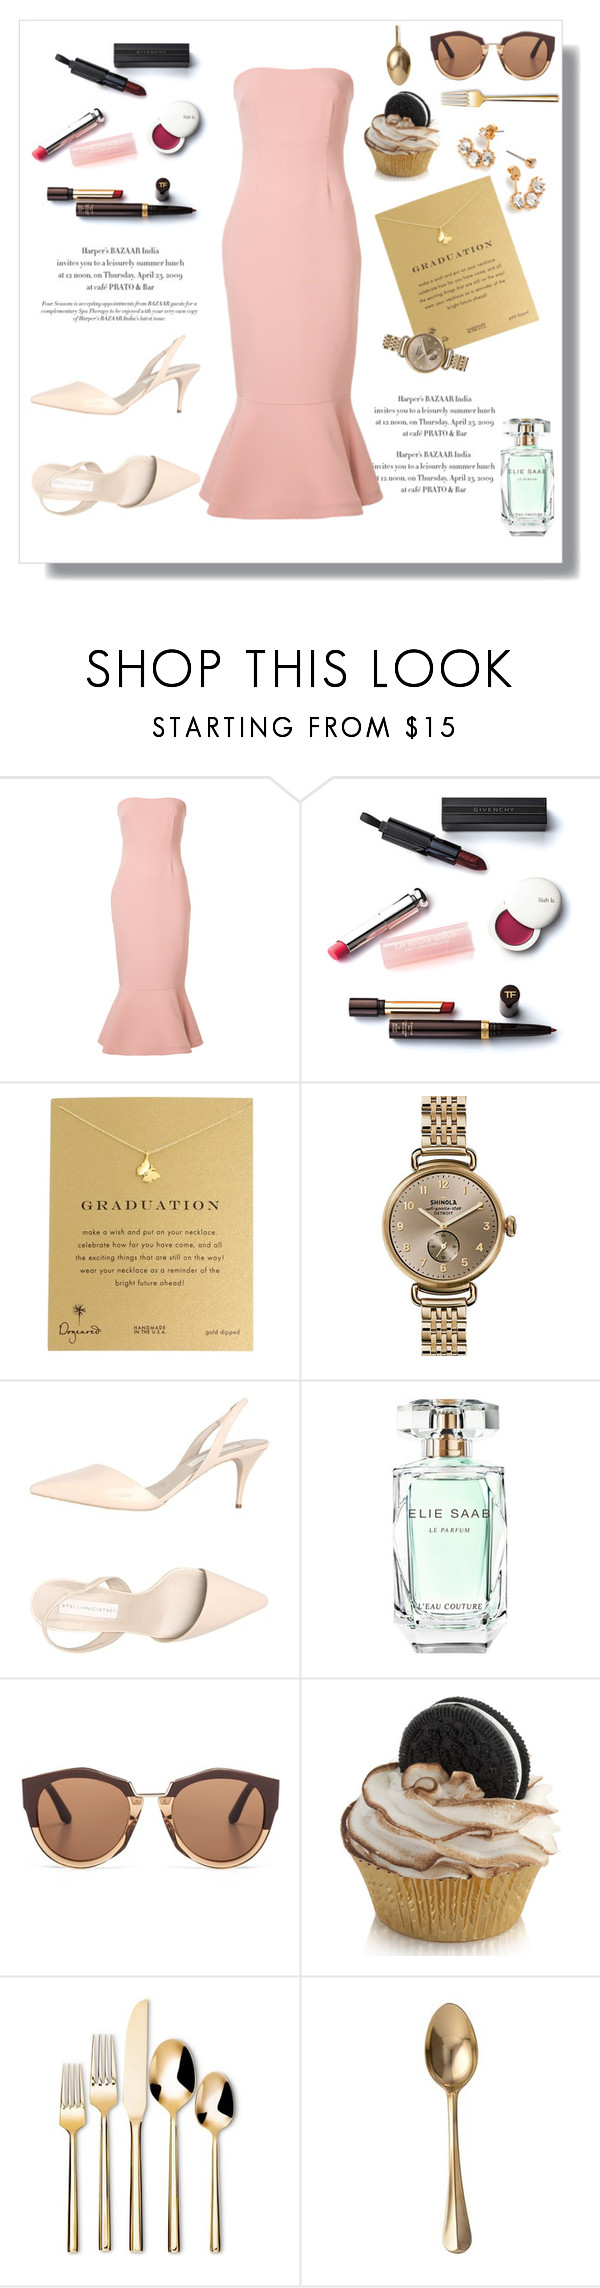 """Graduation Pink"" by swankswanker ❤ liked on Polyvore featuring Cinq à Sept, Christian Dior, Dogeared, Shinola, STELLA McCARTNEY, Elie Saab, Marni, Threshold, Juliska and Graduation"